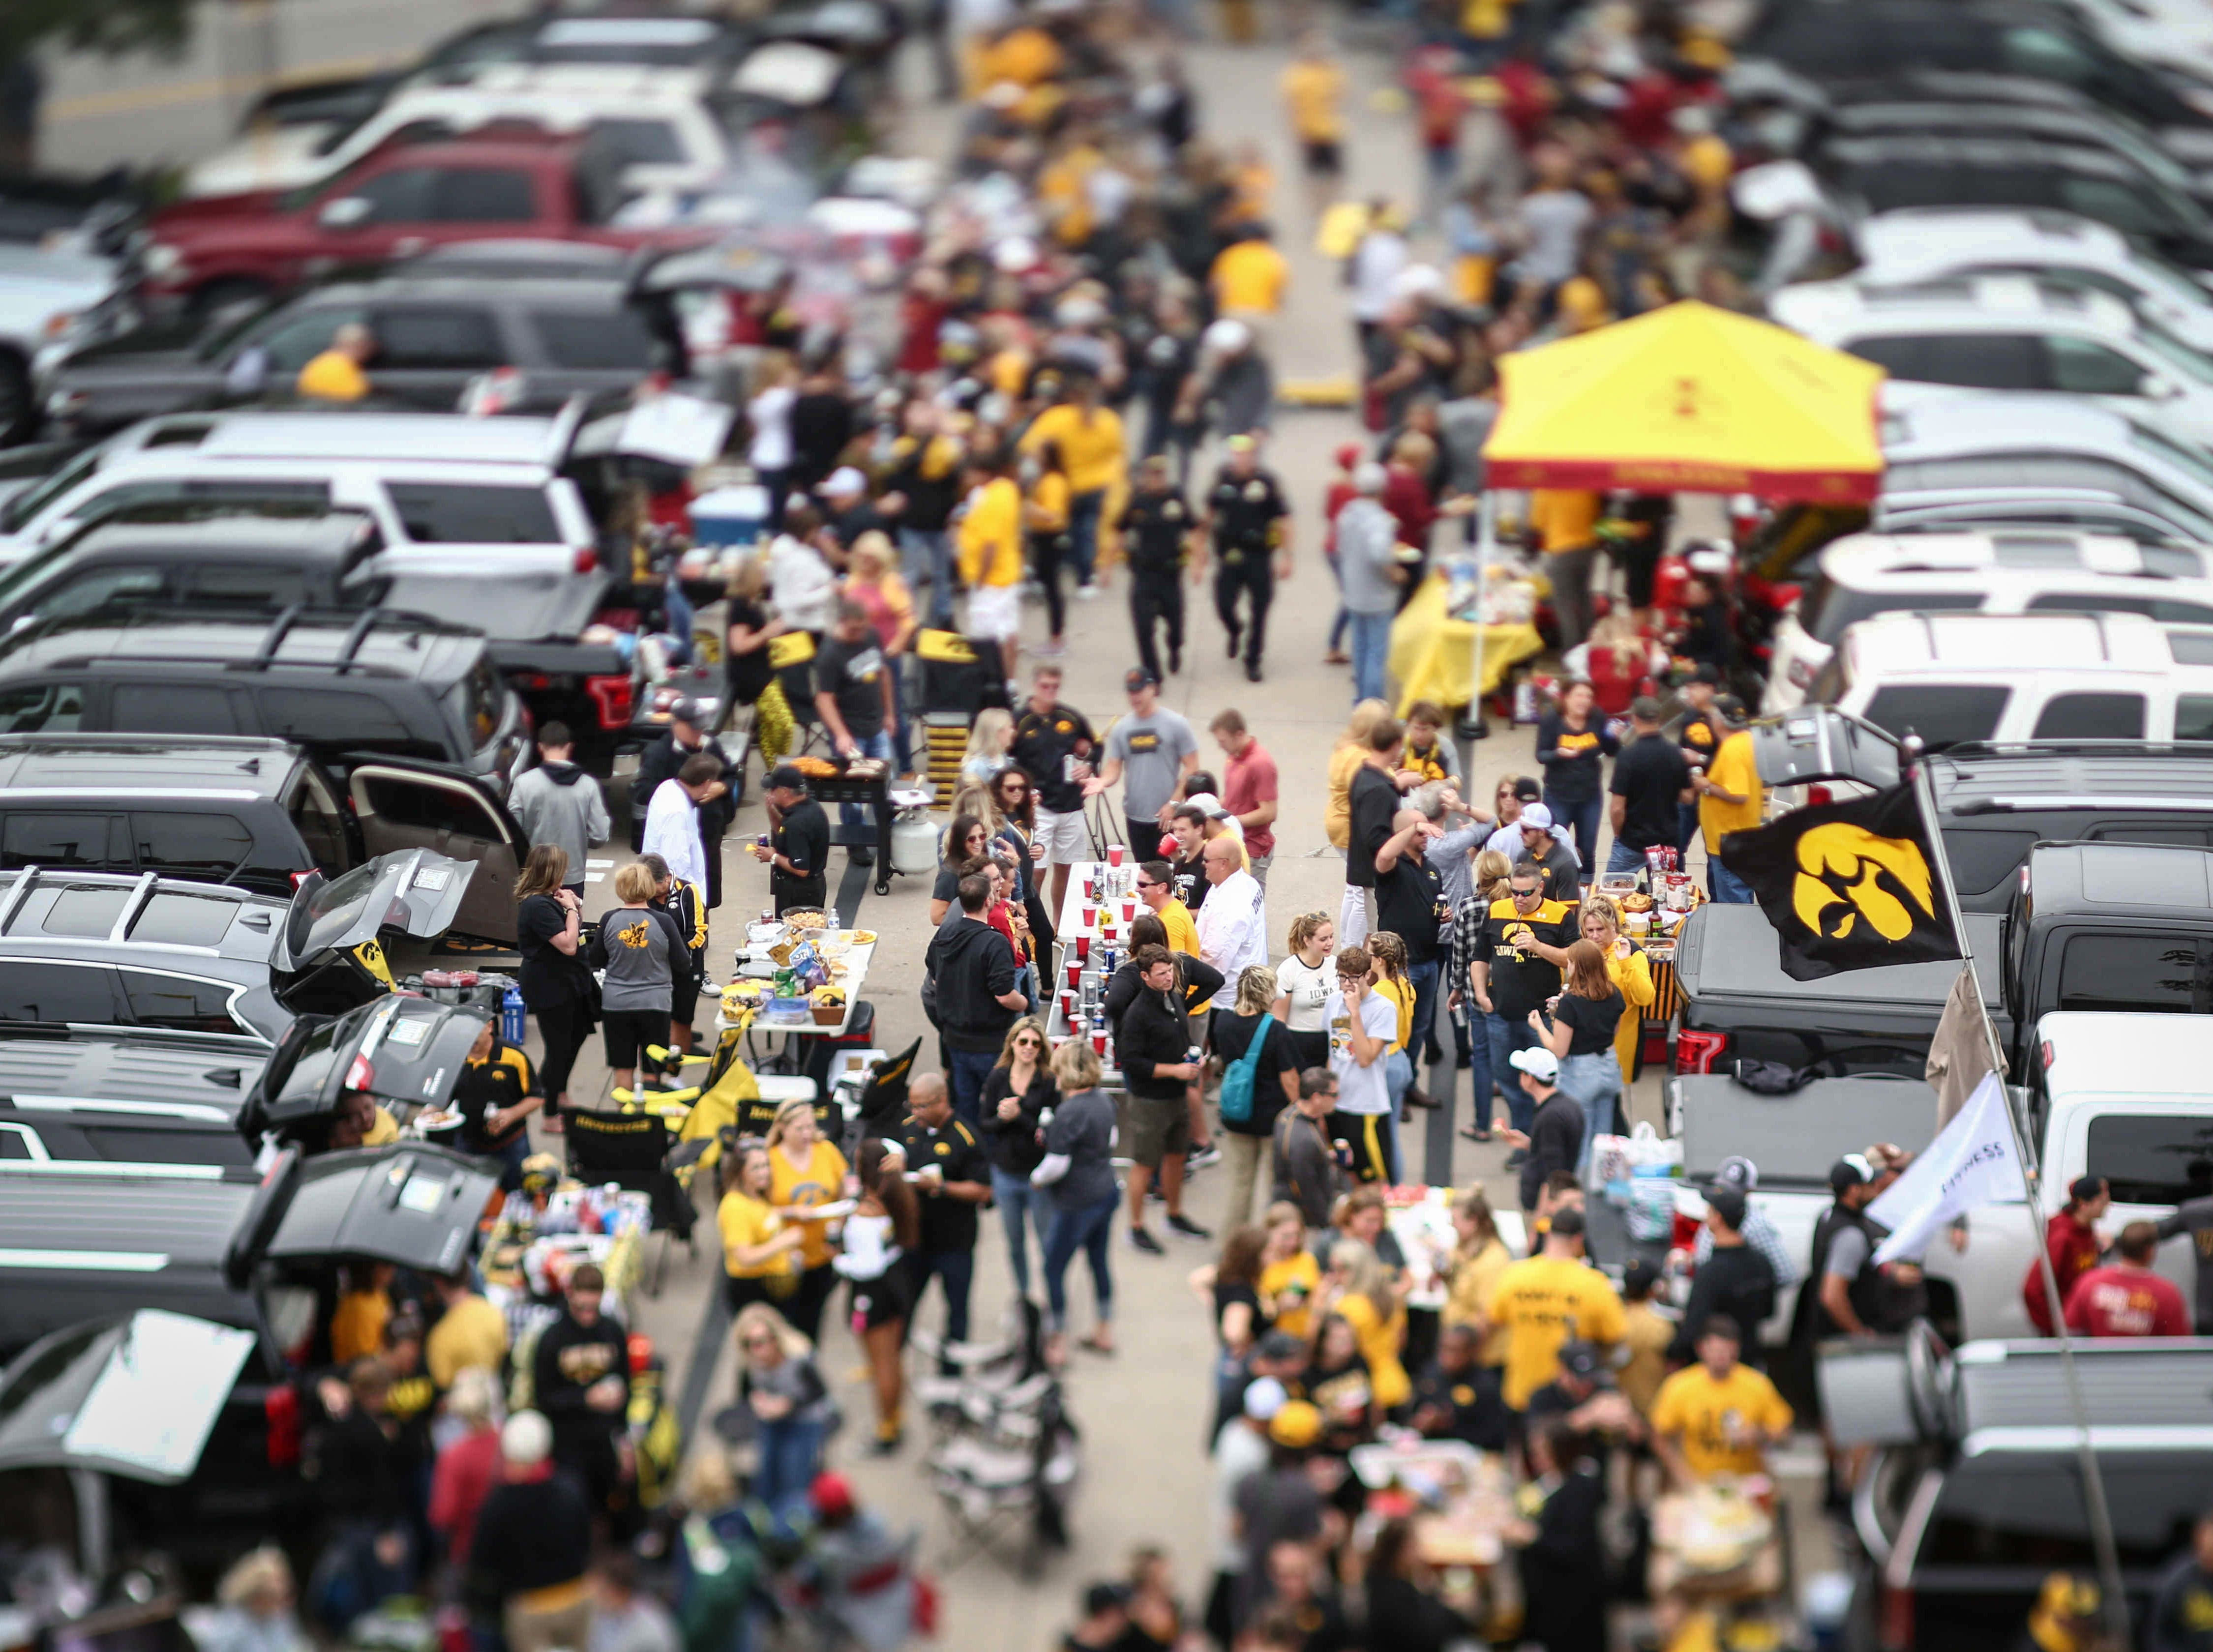 Iowa and Iowa State fans mill about the grounds while tailgating during the CyHawk Series football game on Saturday, Sept. 8, 2018, at Kinnick Stadium in Iowa City.